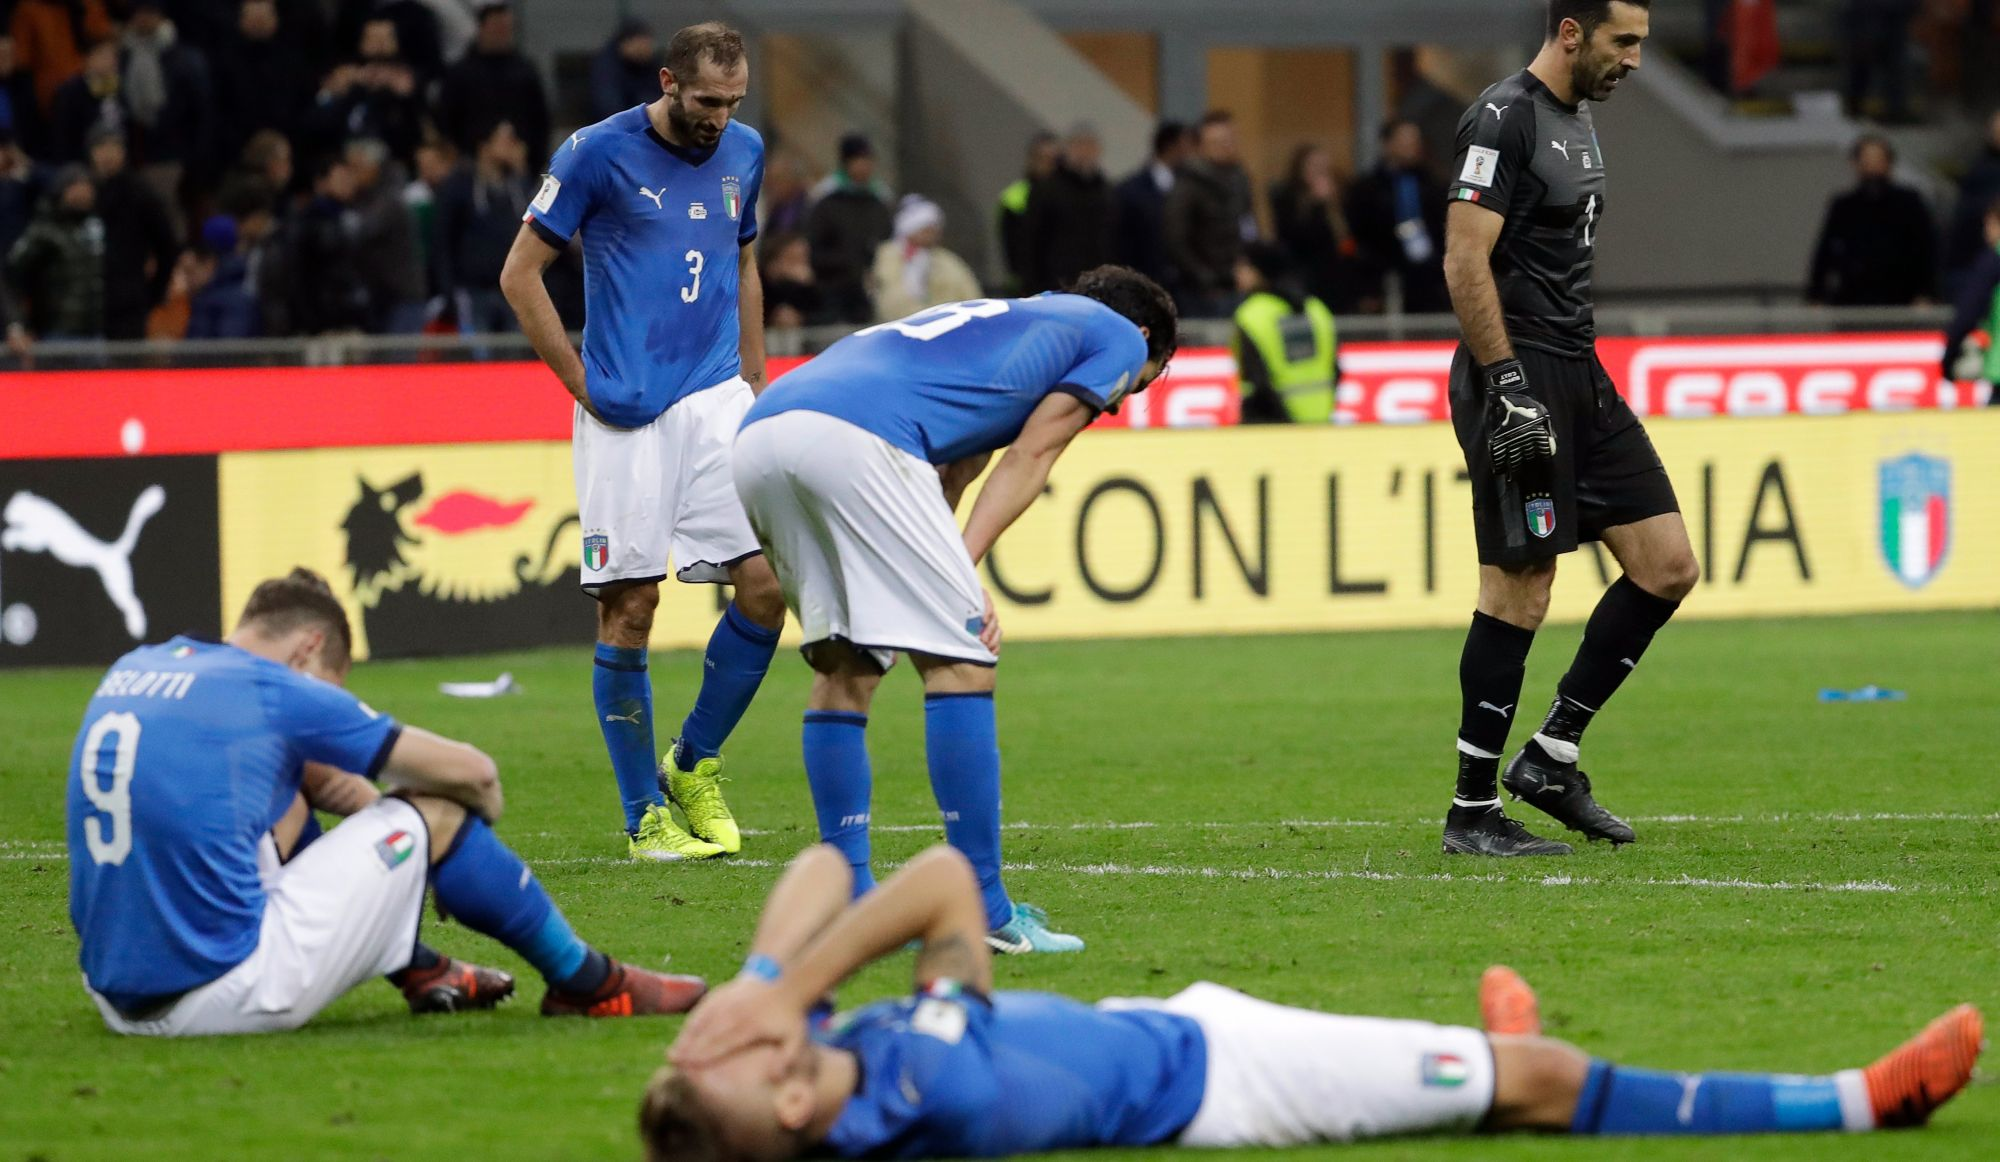 Désastre national: l'Italie exclue du Mondial 2018